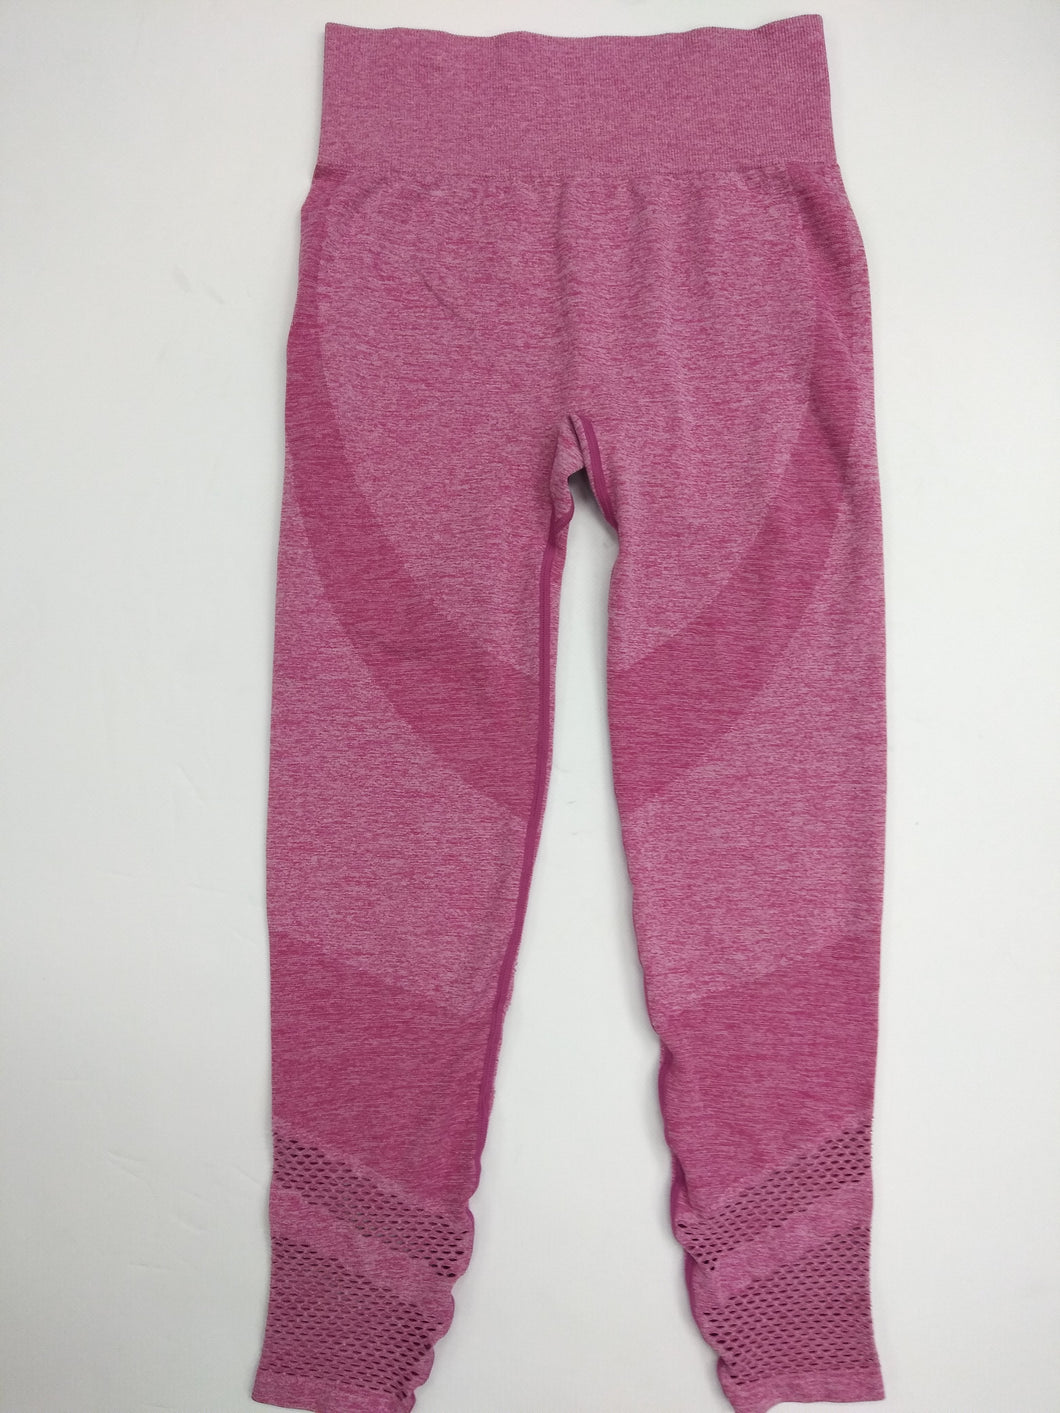 Pink By Victoria's Secret Womens Athletic Pants Size Medium